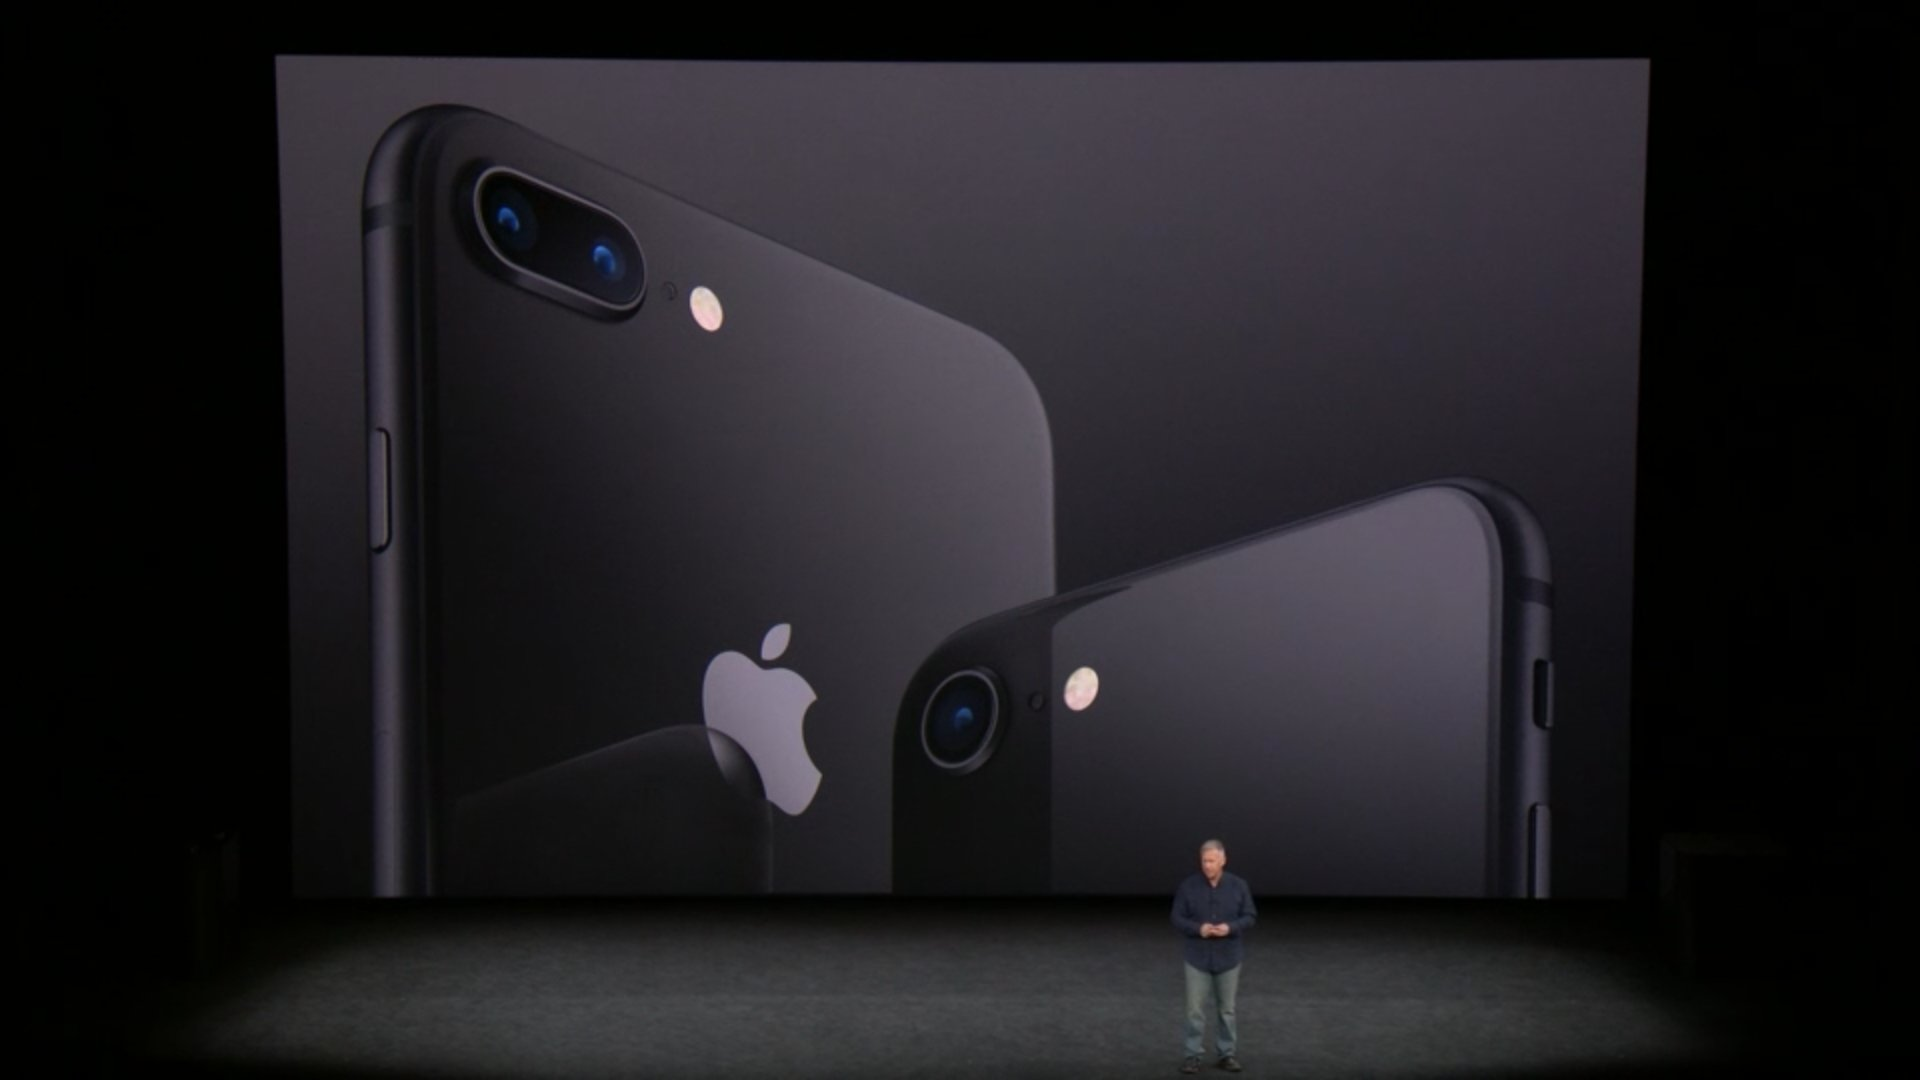 JUST IN: Apple introduces the newest iPhone: the iPhone 8. #AppleEvent https://t.co/9Sm49M5kOQ